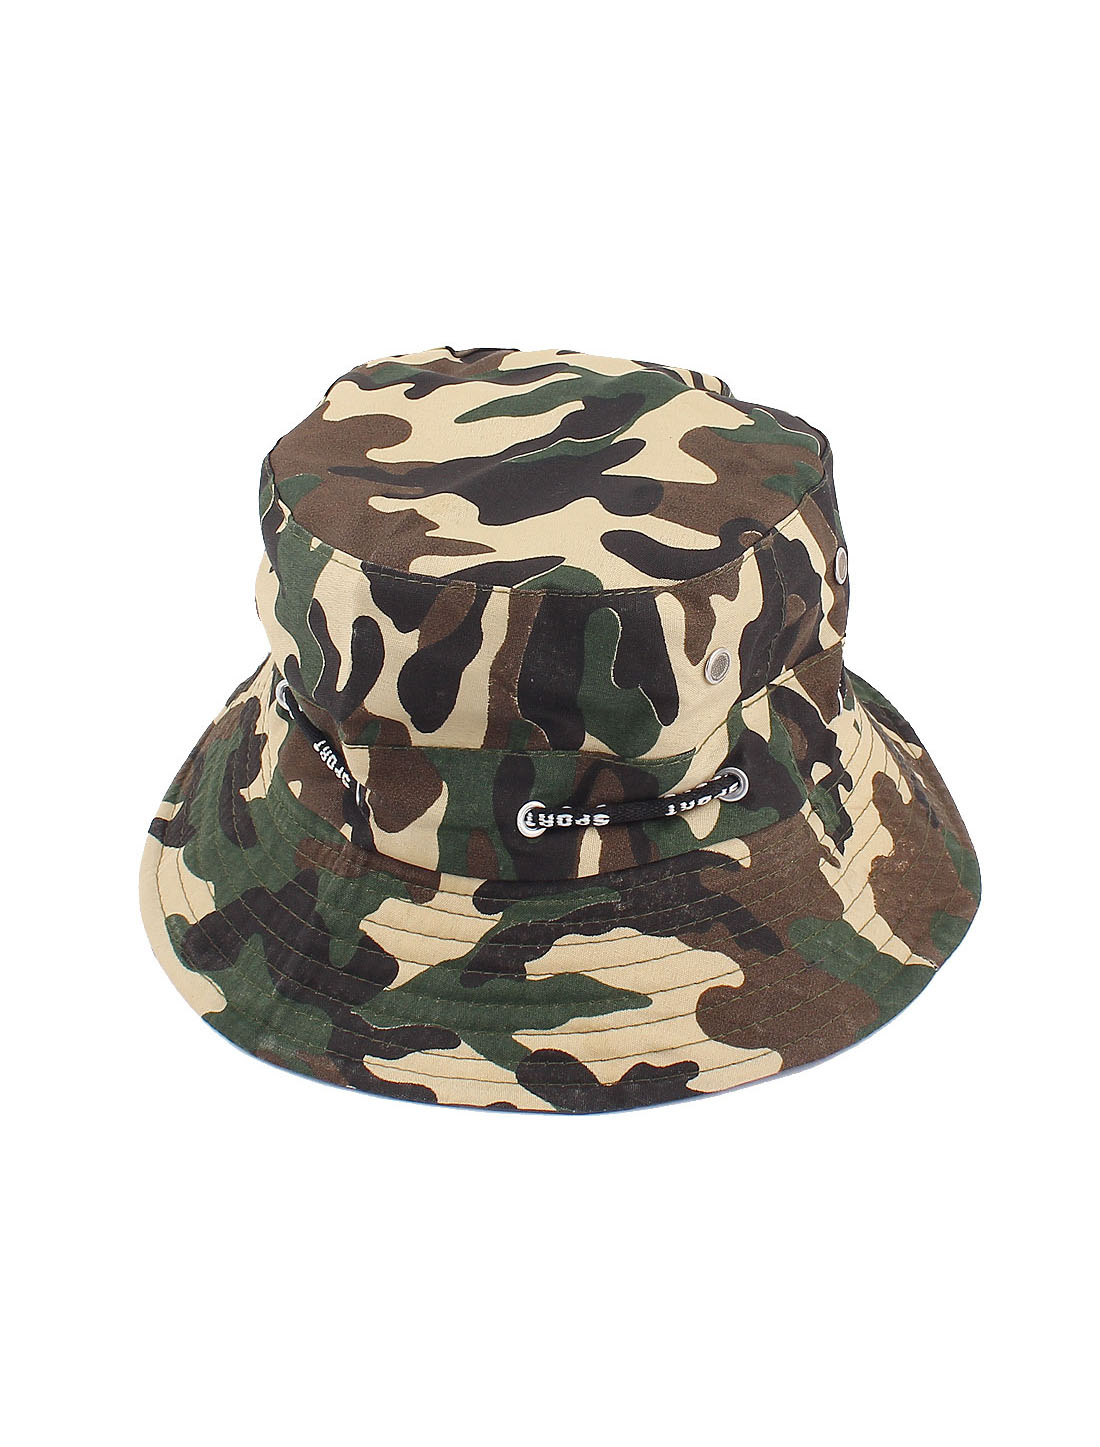 Men Women Unisex Camouflage Pattern Adjustable Strap Fishing Hiking Bucket Cap Hat Army Green